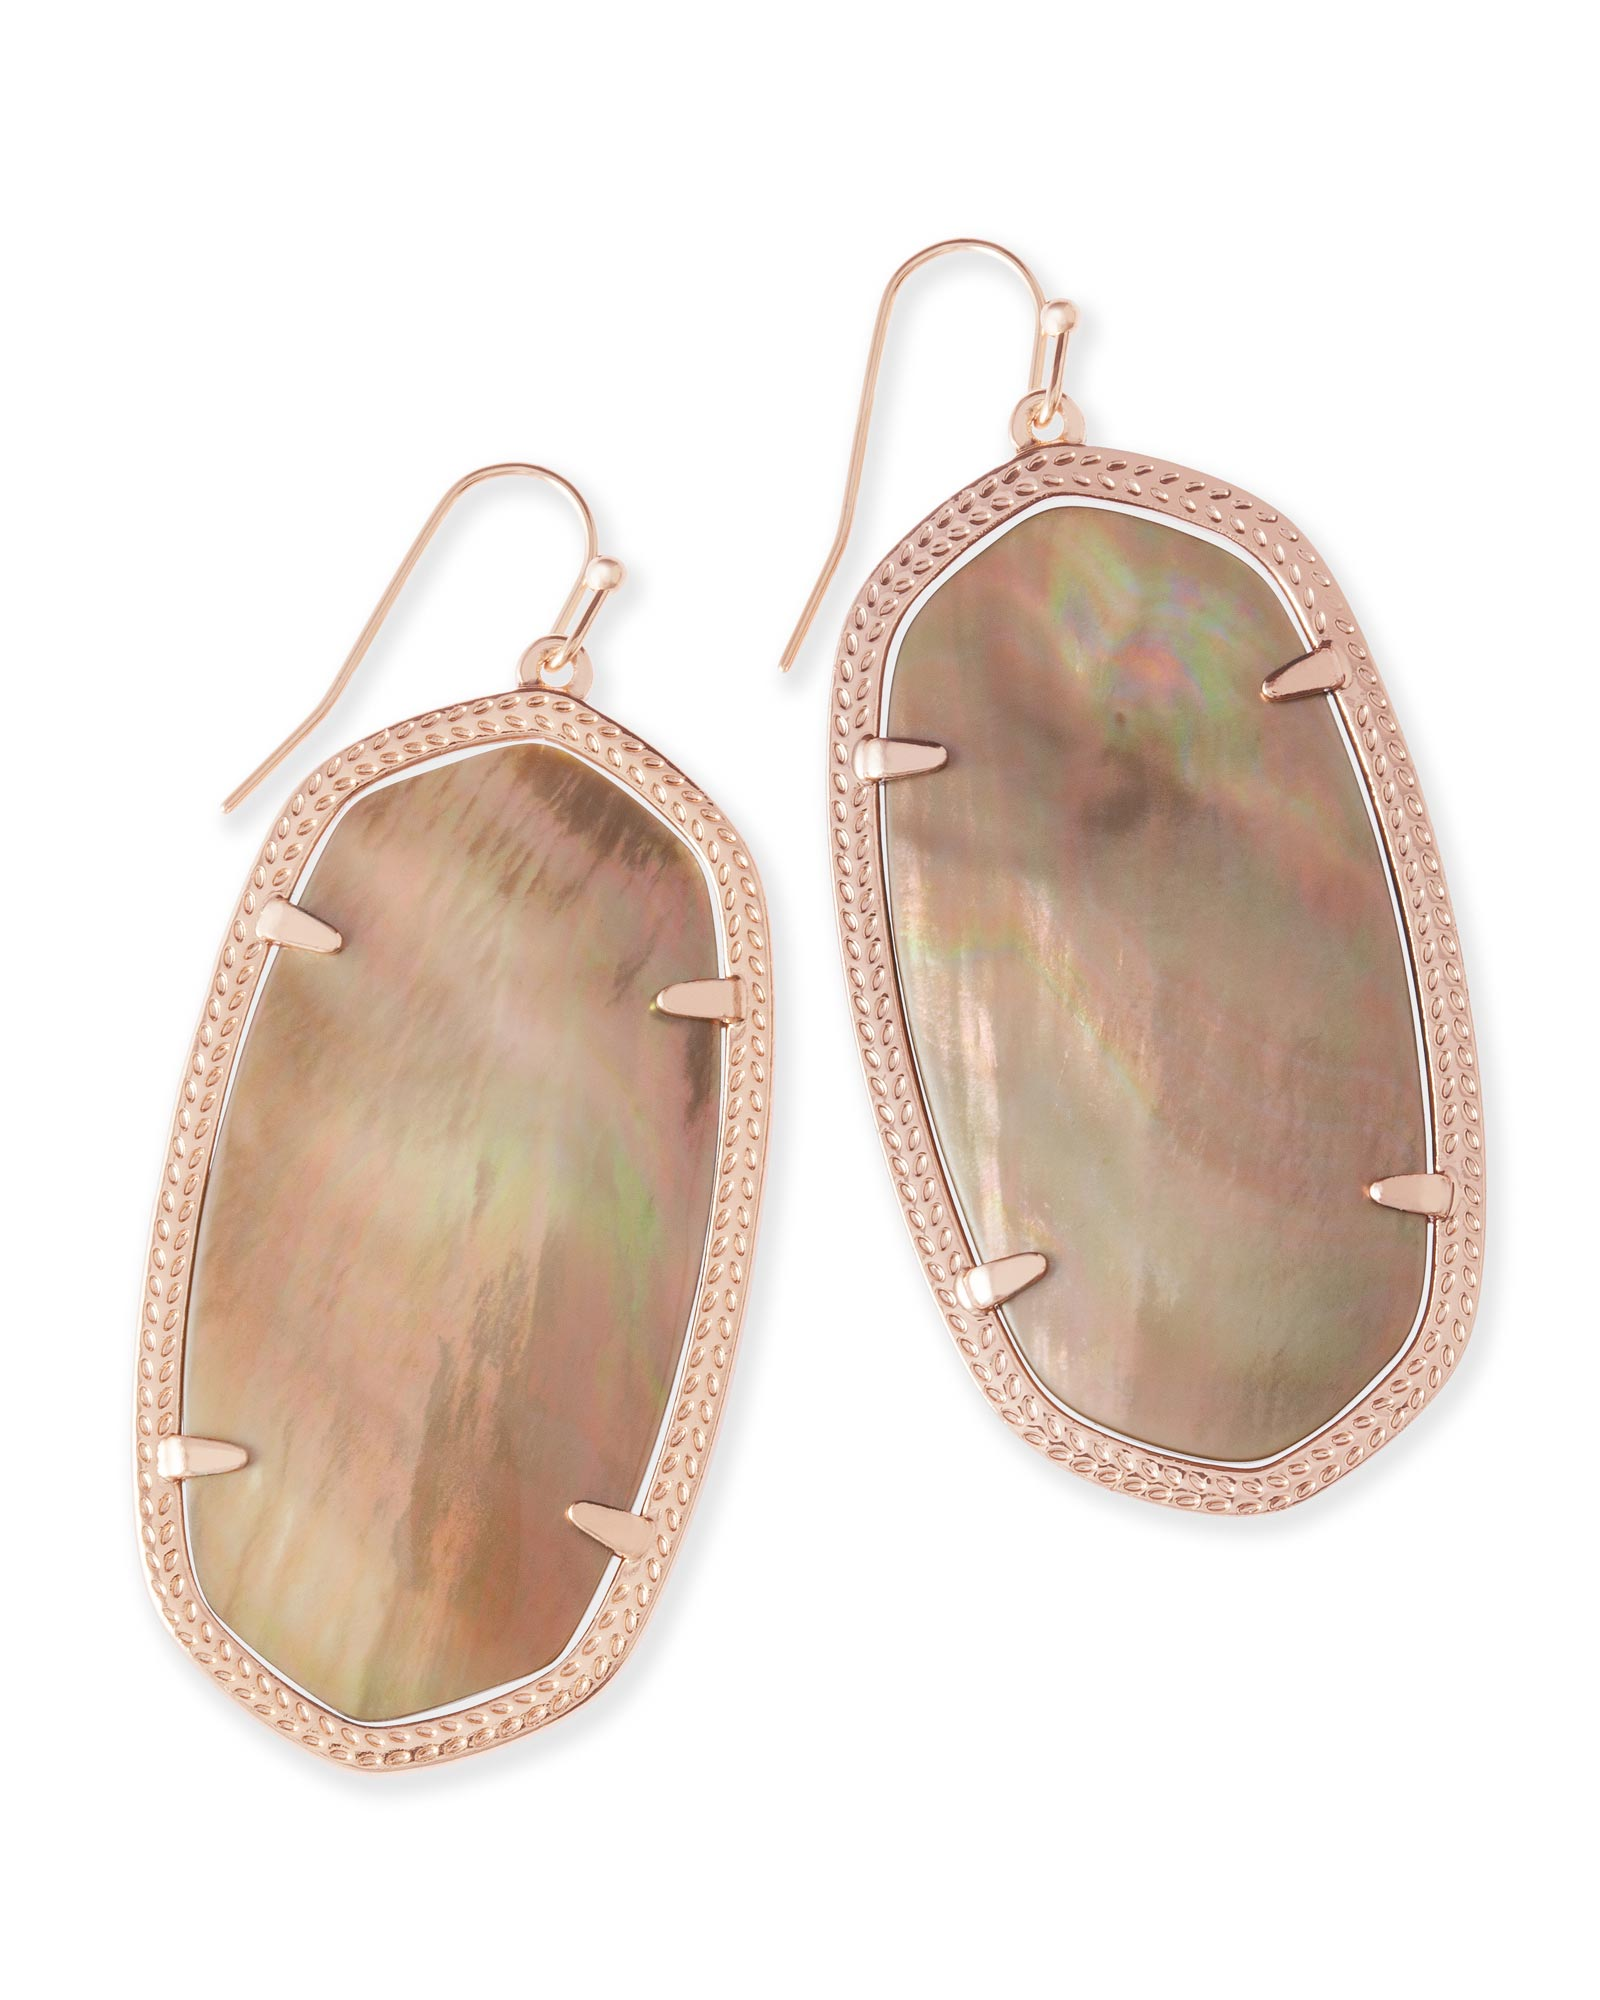 KENDRA SCOTT DANIELLE EARRINGS IN ROSE GOLD